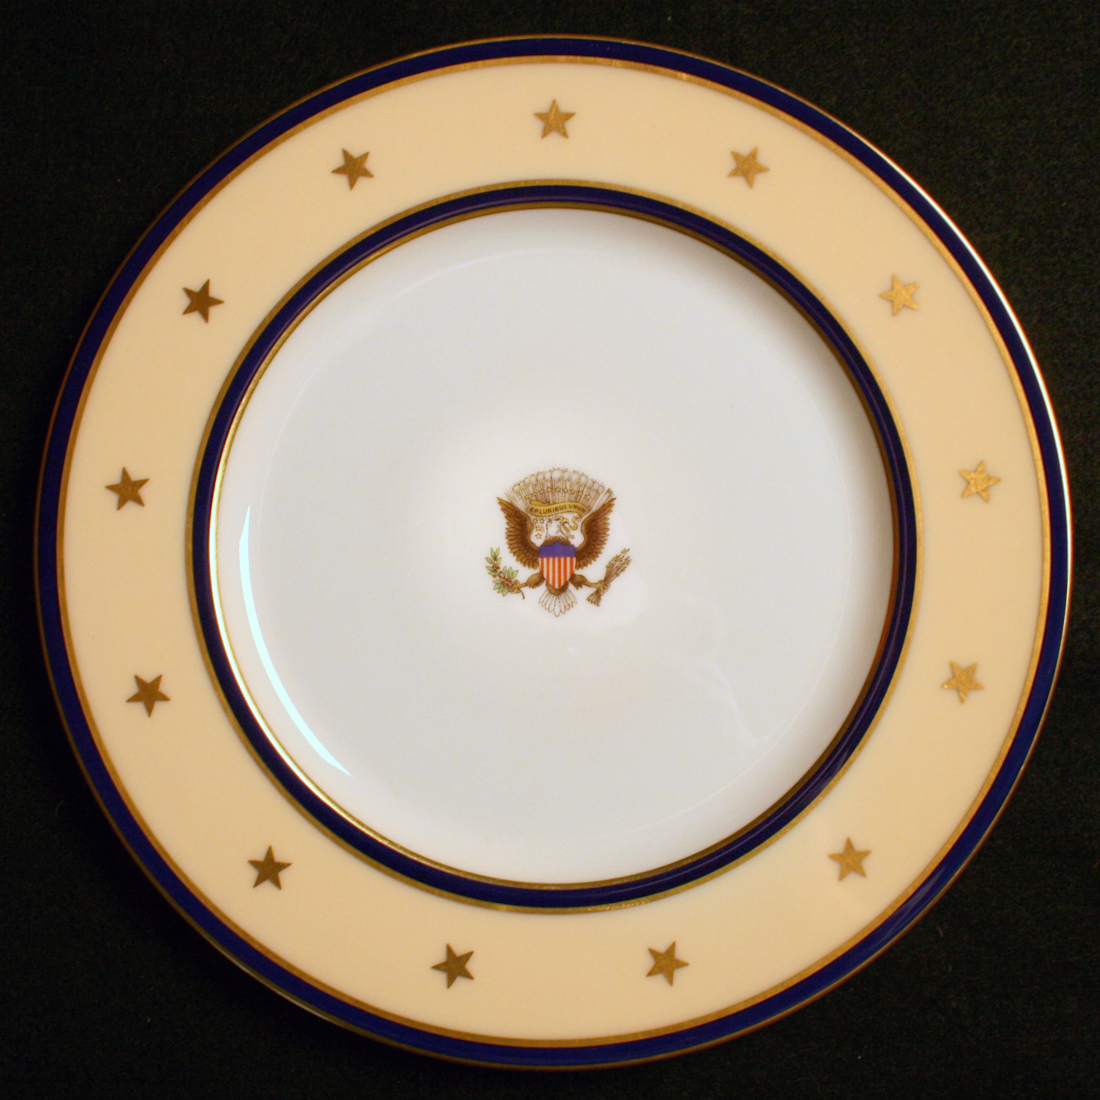 fdr_wiliamsburg_service_close-up_franklin-roosevelt-china-uss-williamsburg-plate-1